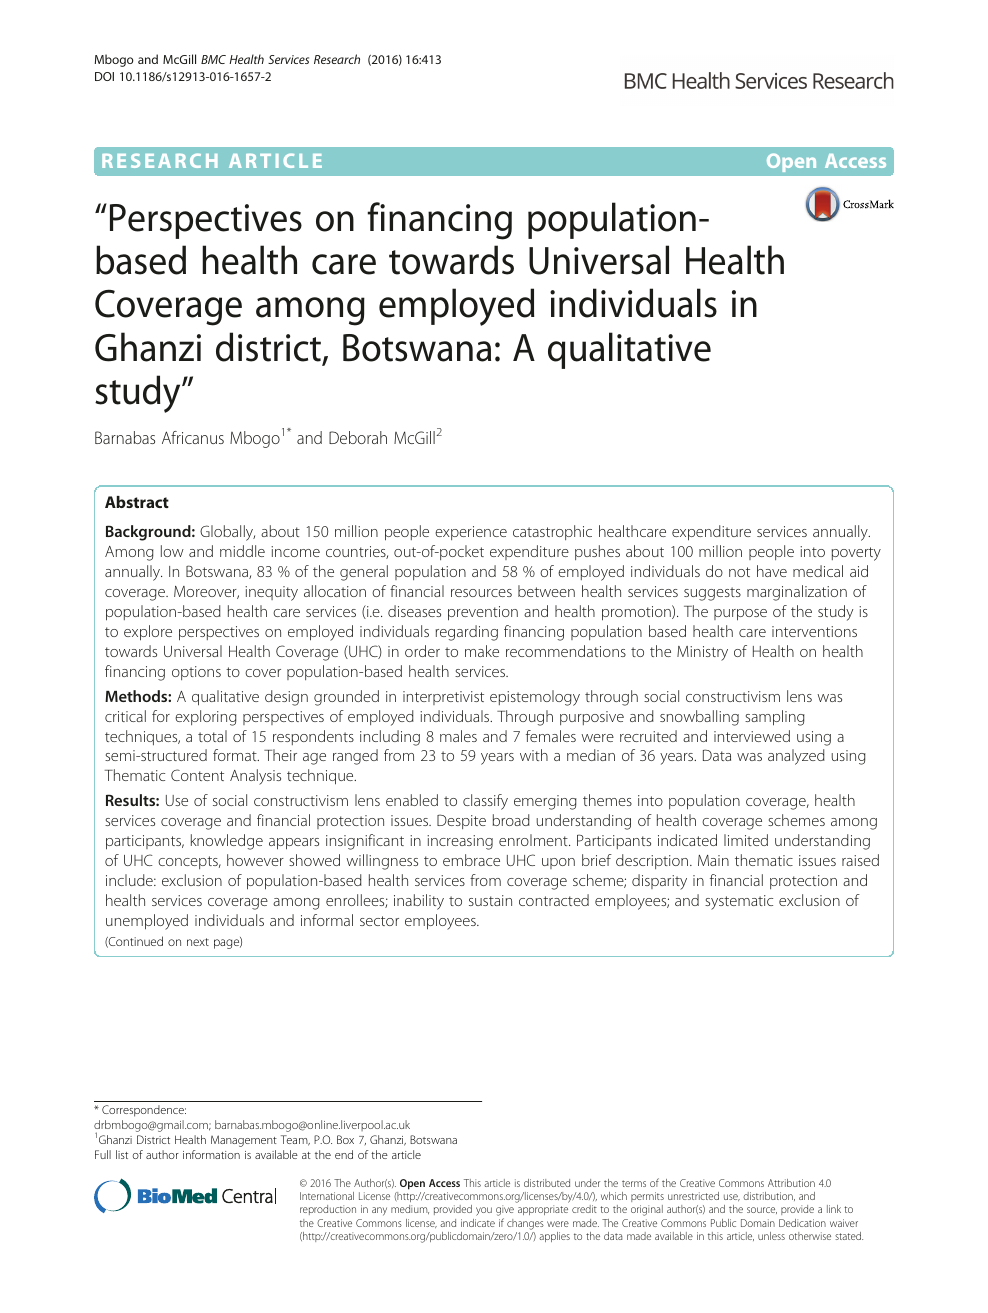 Perspectives on financing population-based health care towards